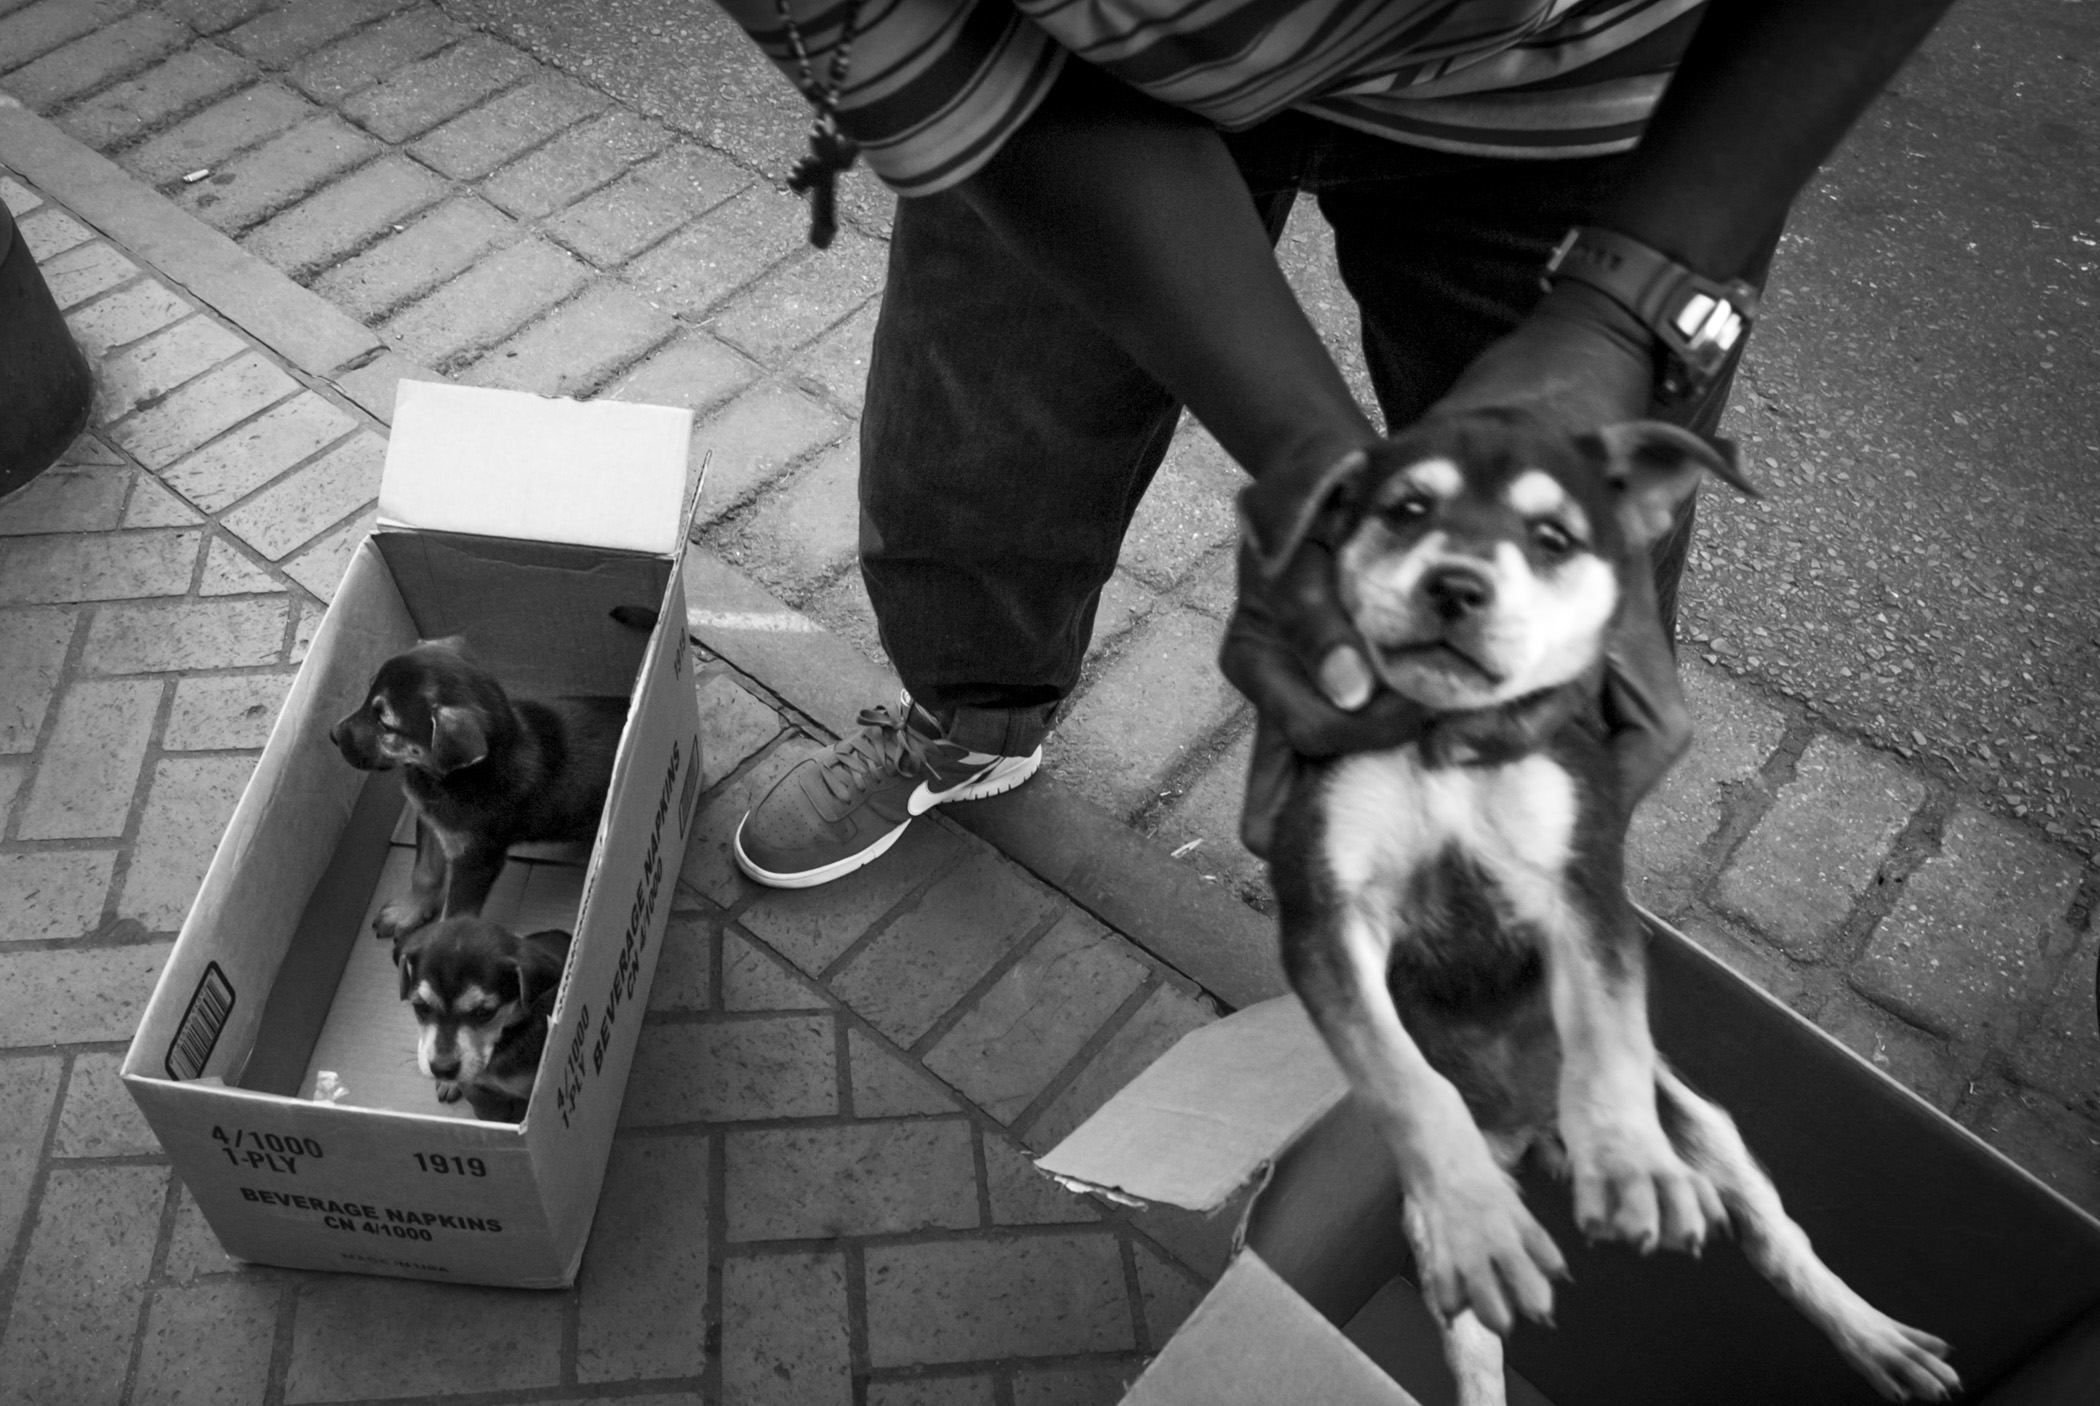 Moving puppies that were for for sale from one box to a larger one Bourbon Street, New Orleans, 2010